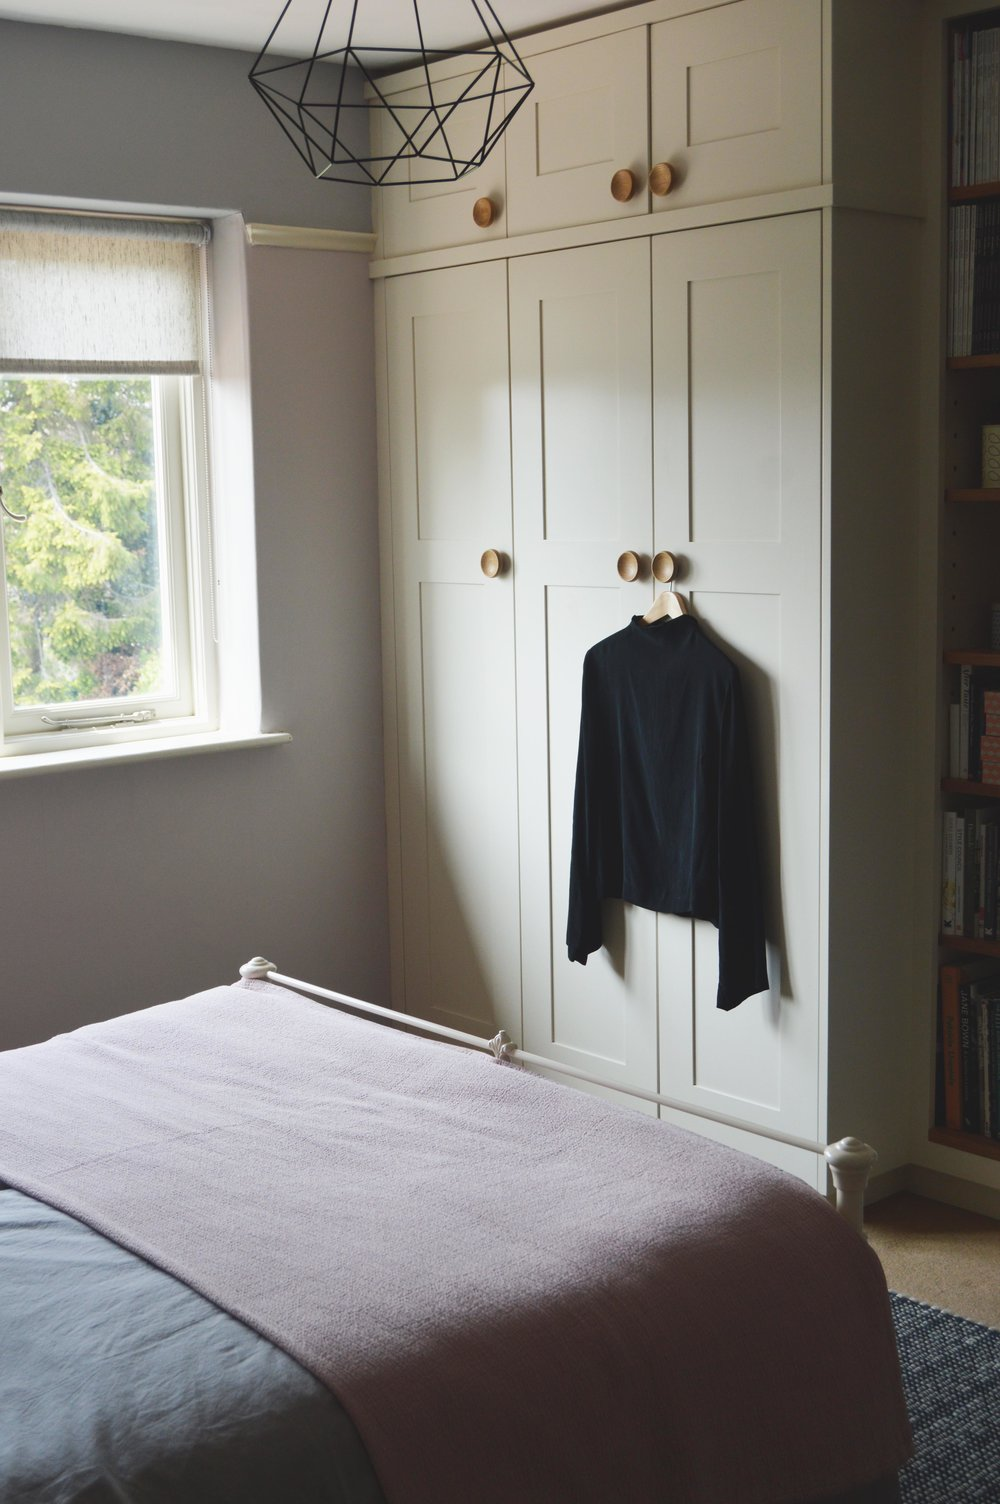 Interior Intake Bedroom Wardrobe.jpg